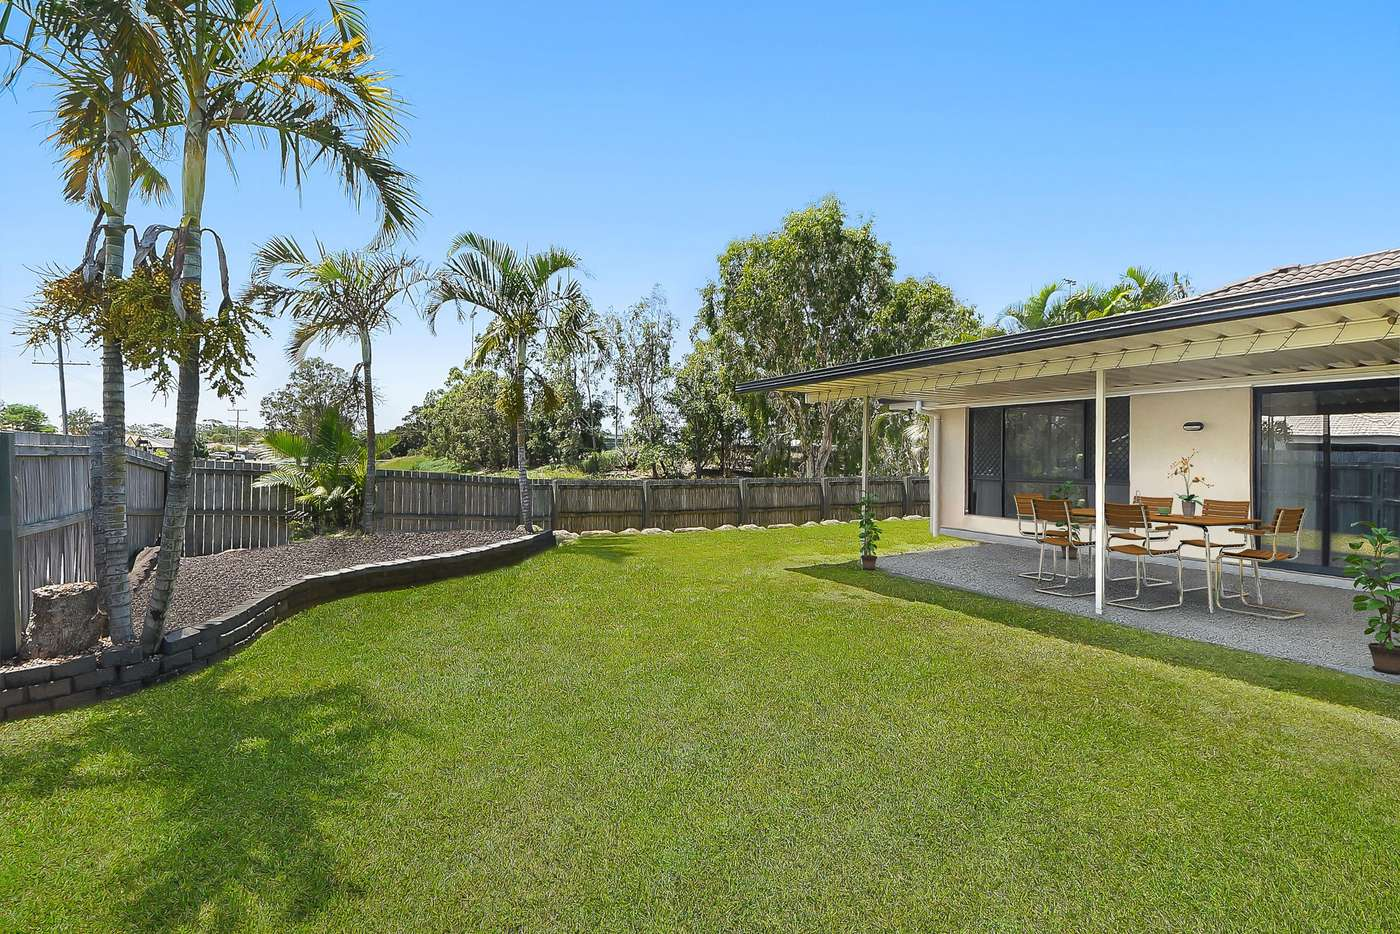 Main view of Homely house listing, 1 Brace Close, Bray Park QLD 4500